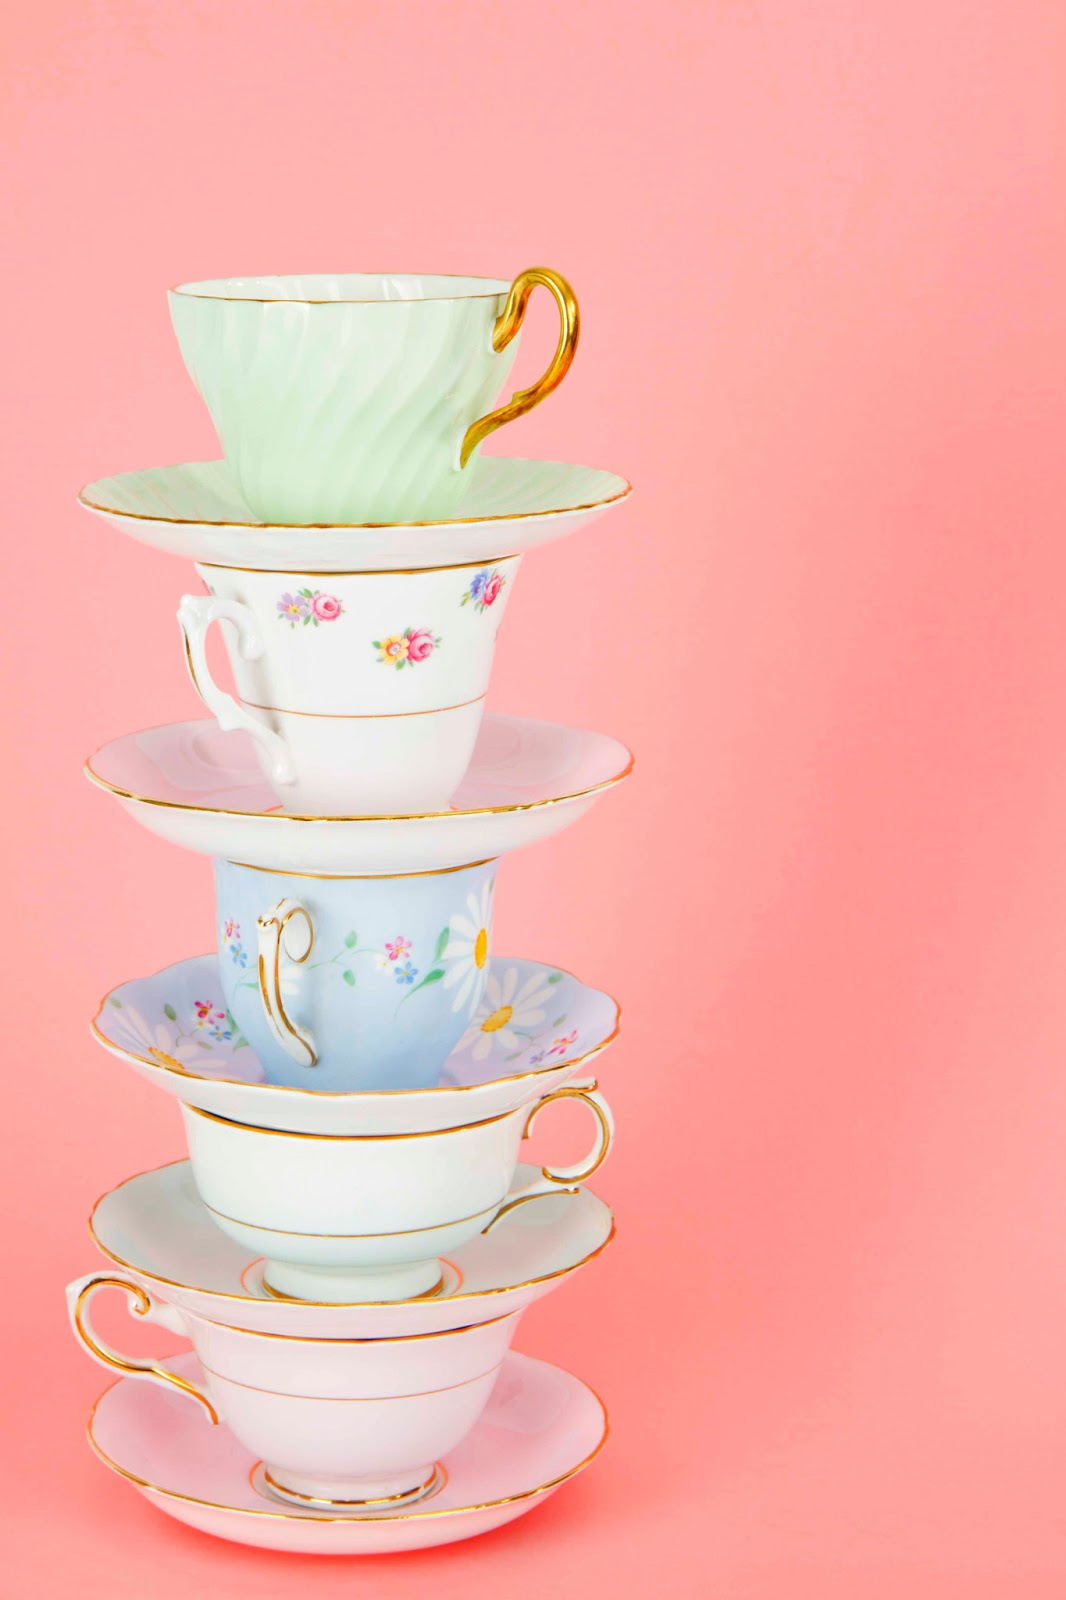 Tea party background royalty free stock photo image 28839215 - Jpg 1066x1600 Tea Party Background